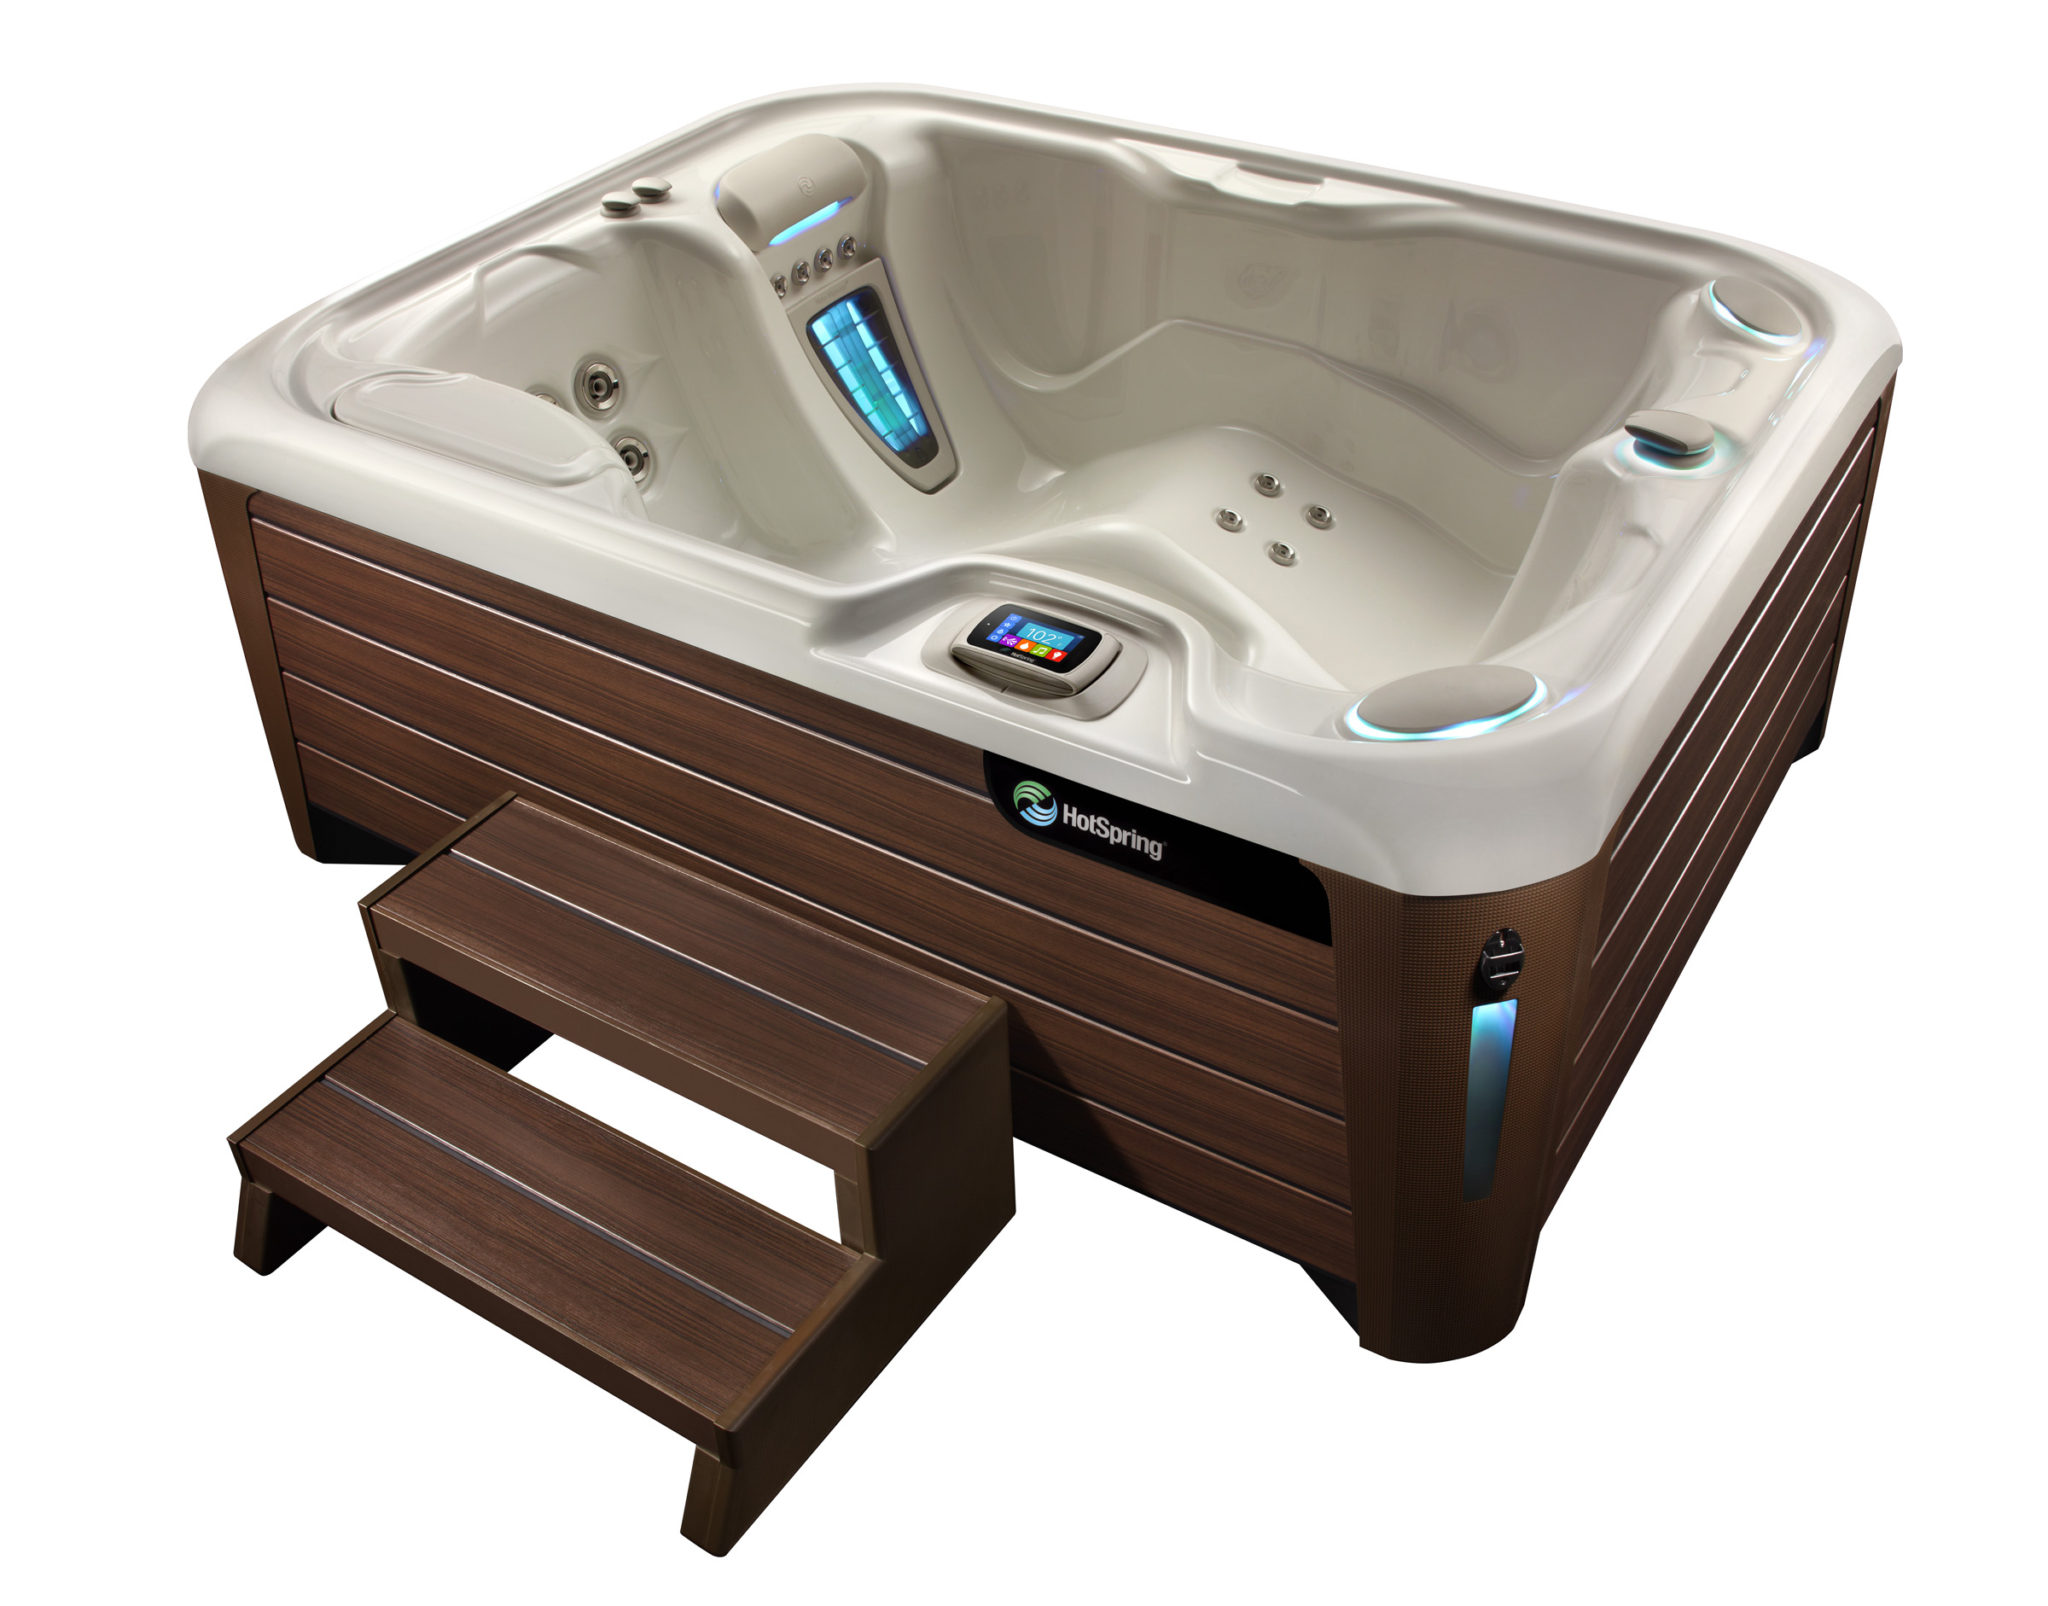 Hot Spring Highlife 2014 Jetsetter NXT AlpineWhite Mocha High Angle 01 - Hot Spring Hot Tubs